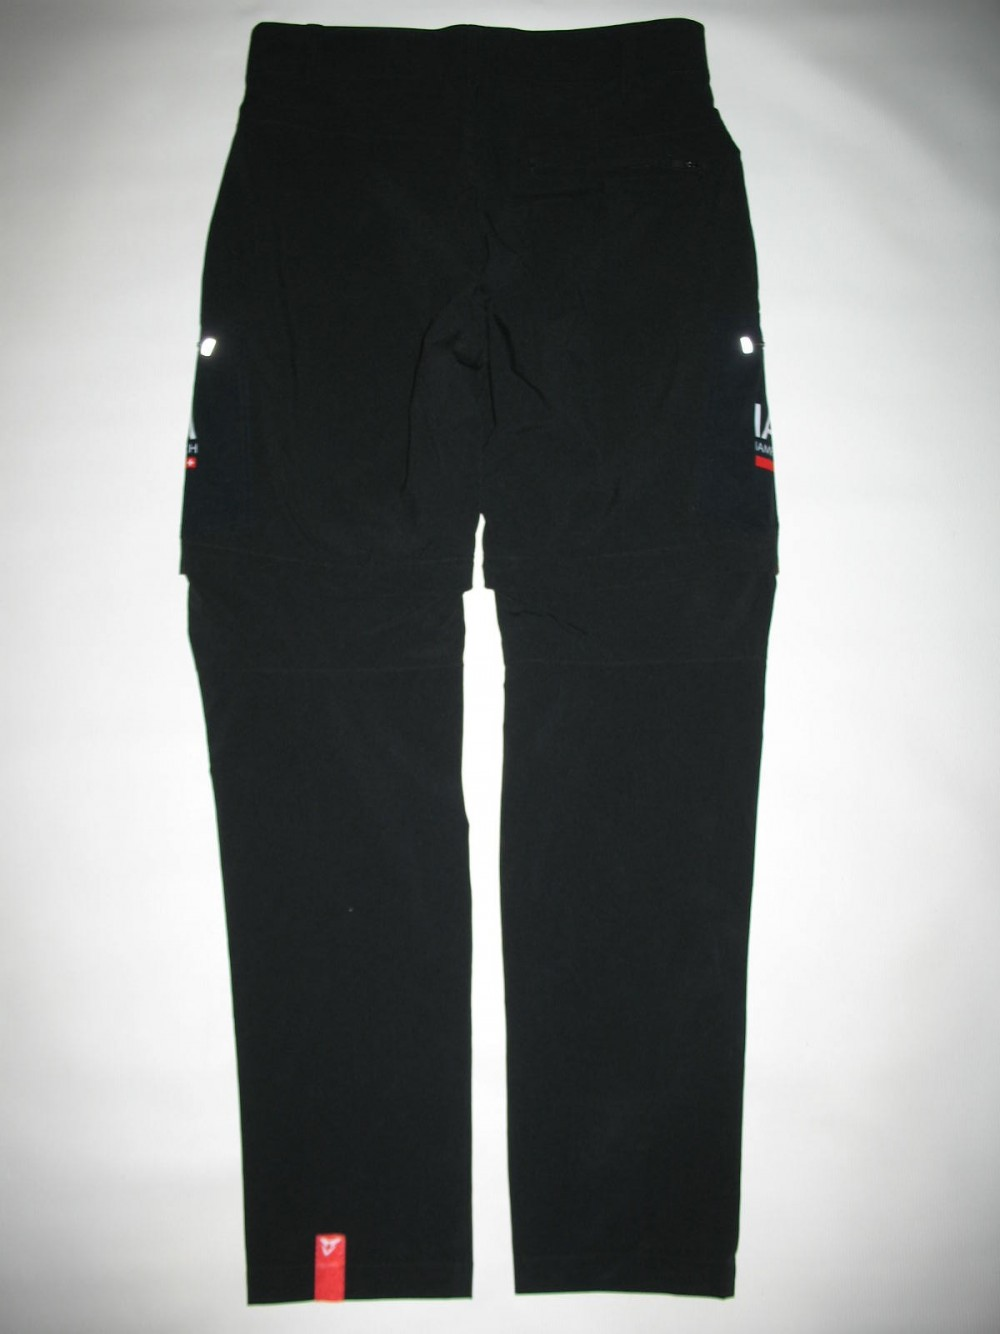 Штаны CUORE iamfunds 2in1 cycling pants (размер S) - 3